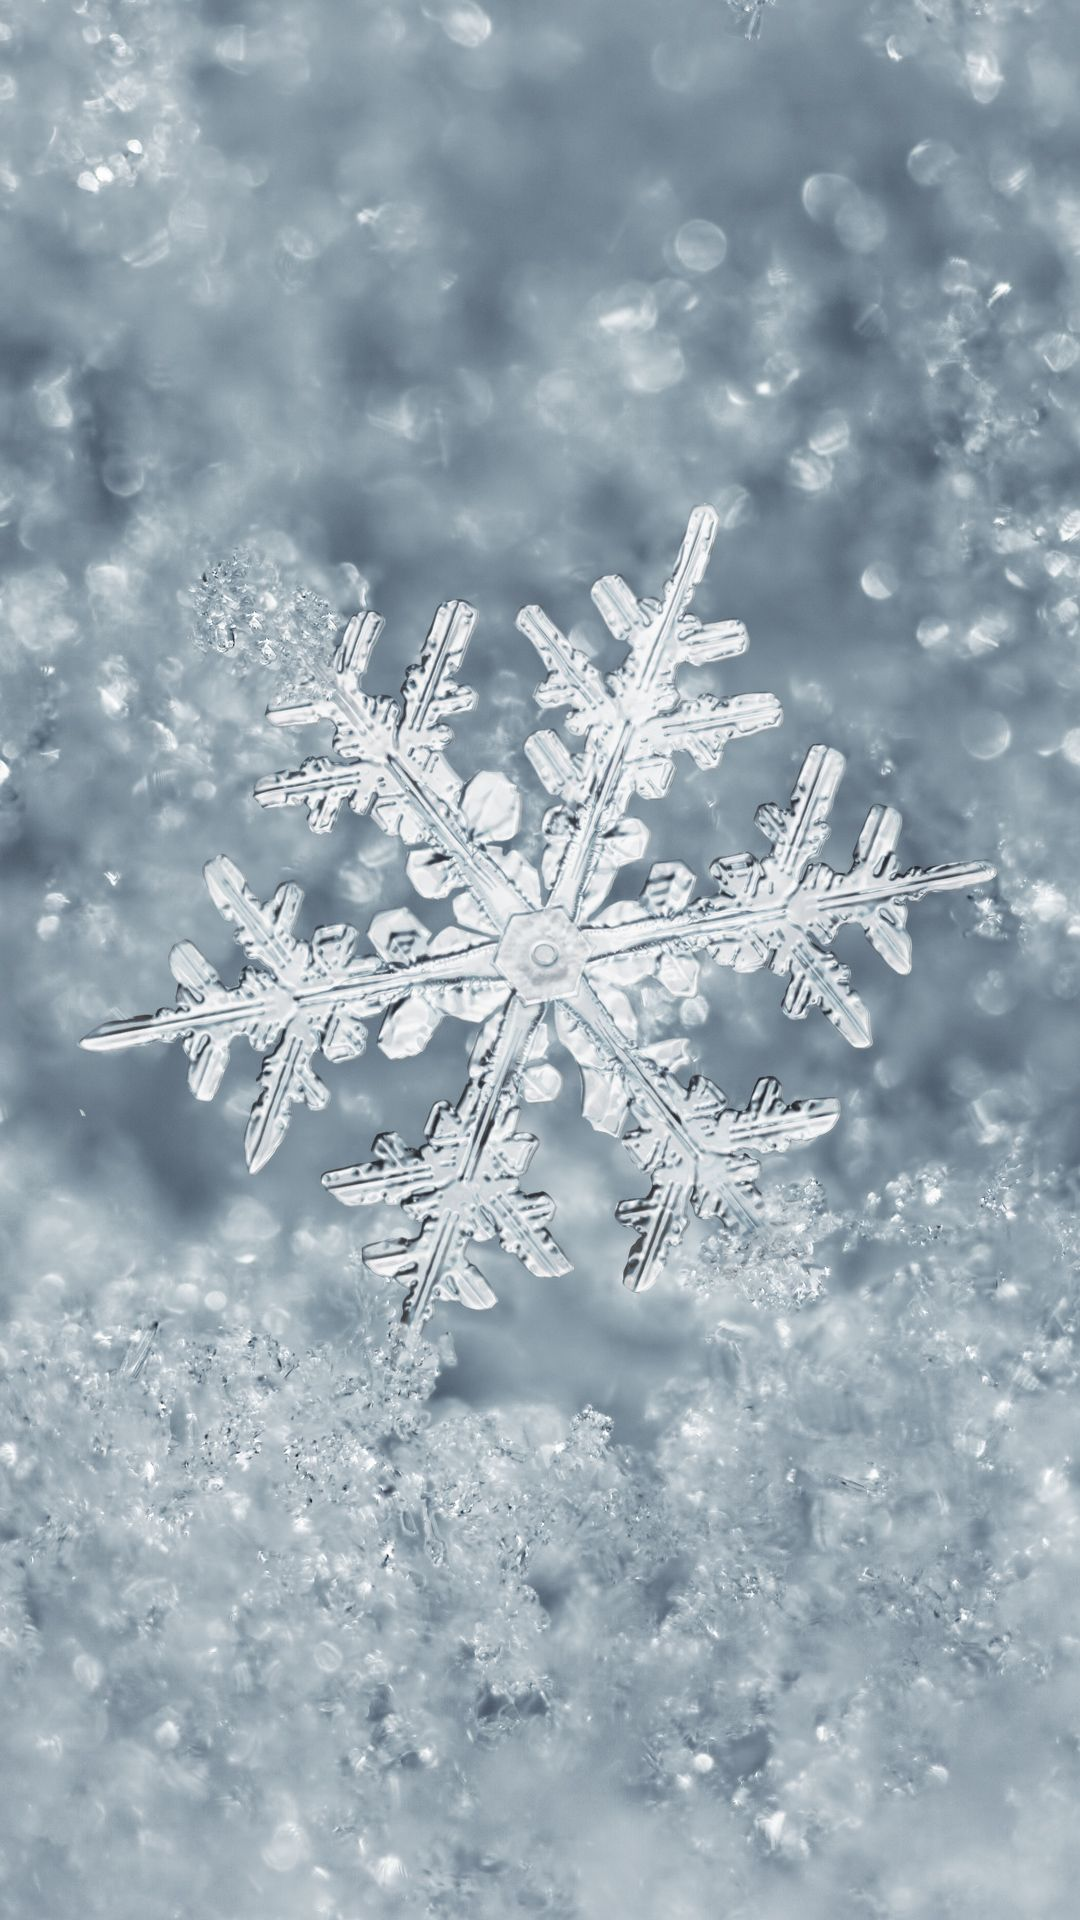 Ice Snowflake Iphone 7 Plus Wallpaper Winter Wallpaper Winter